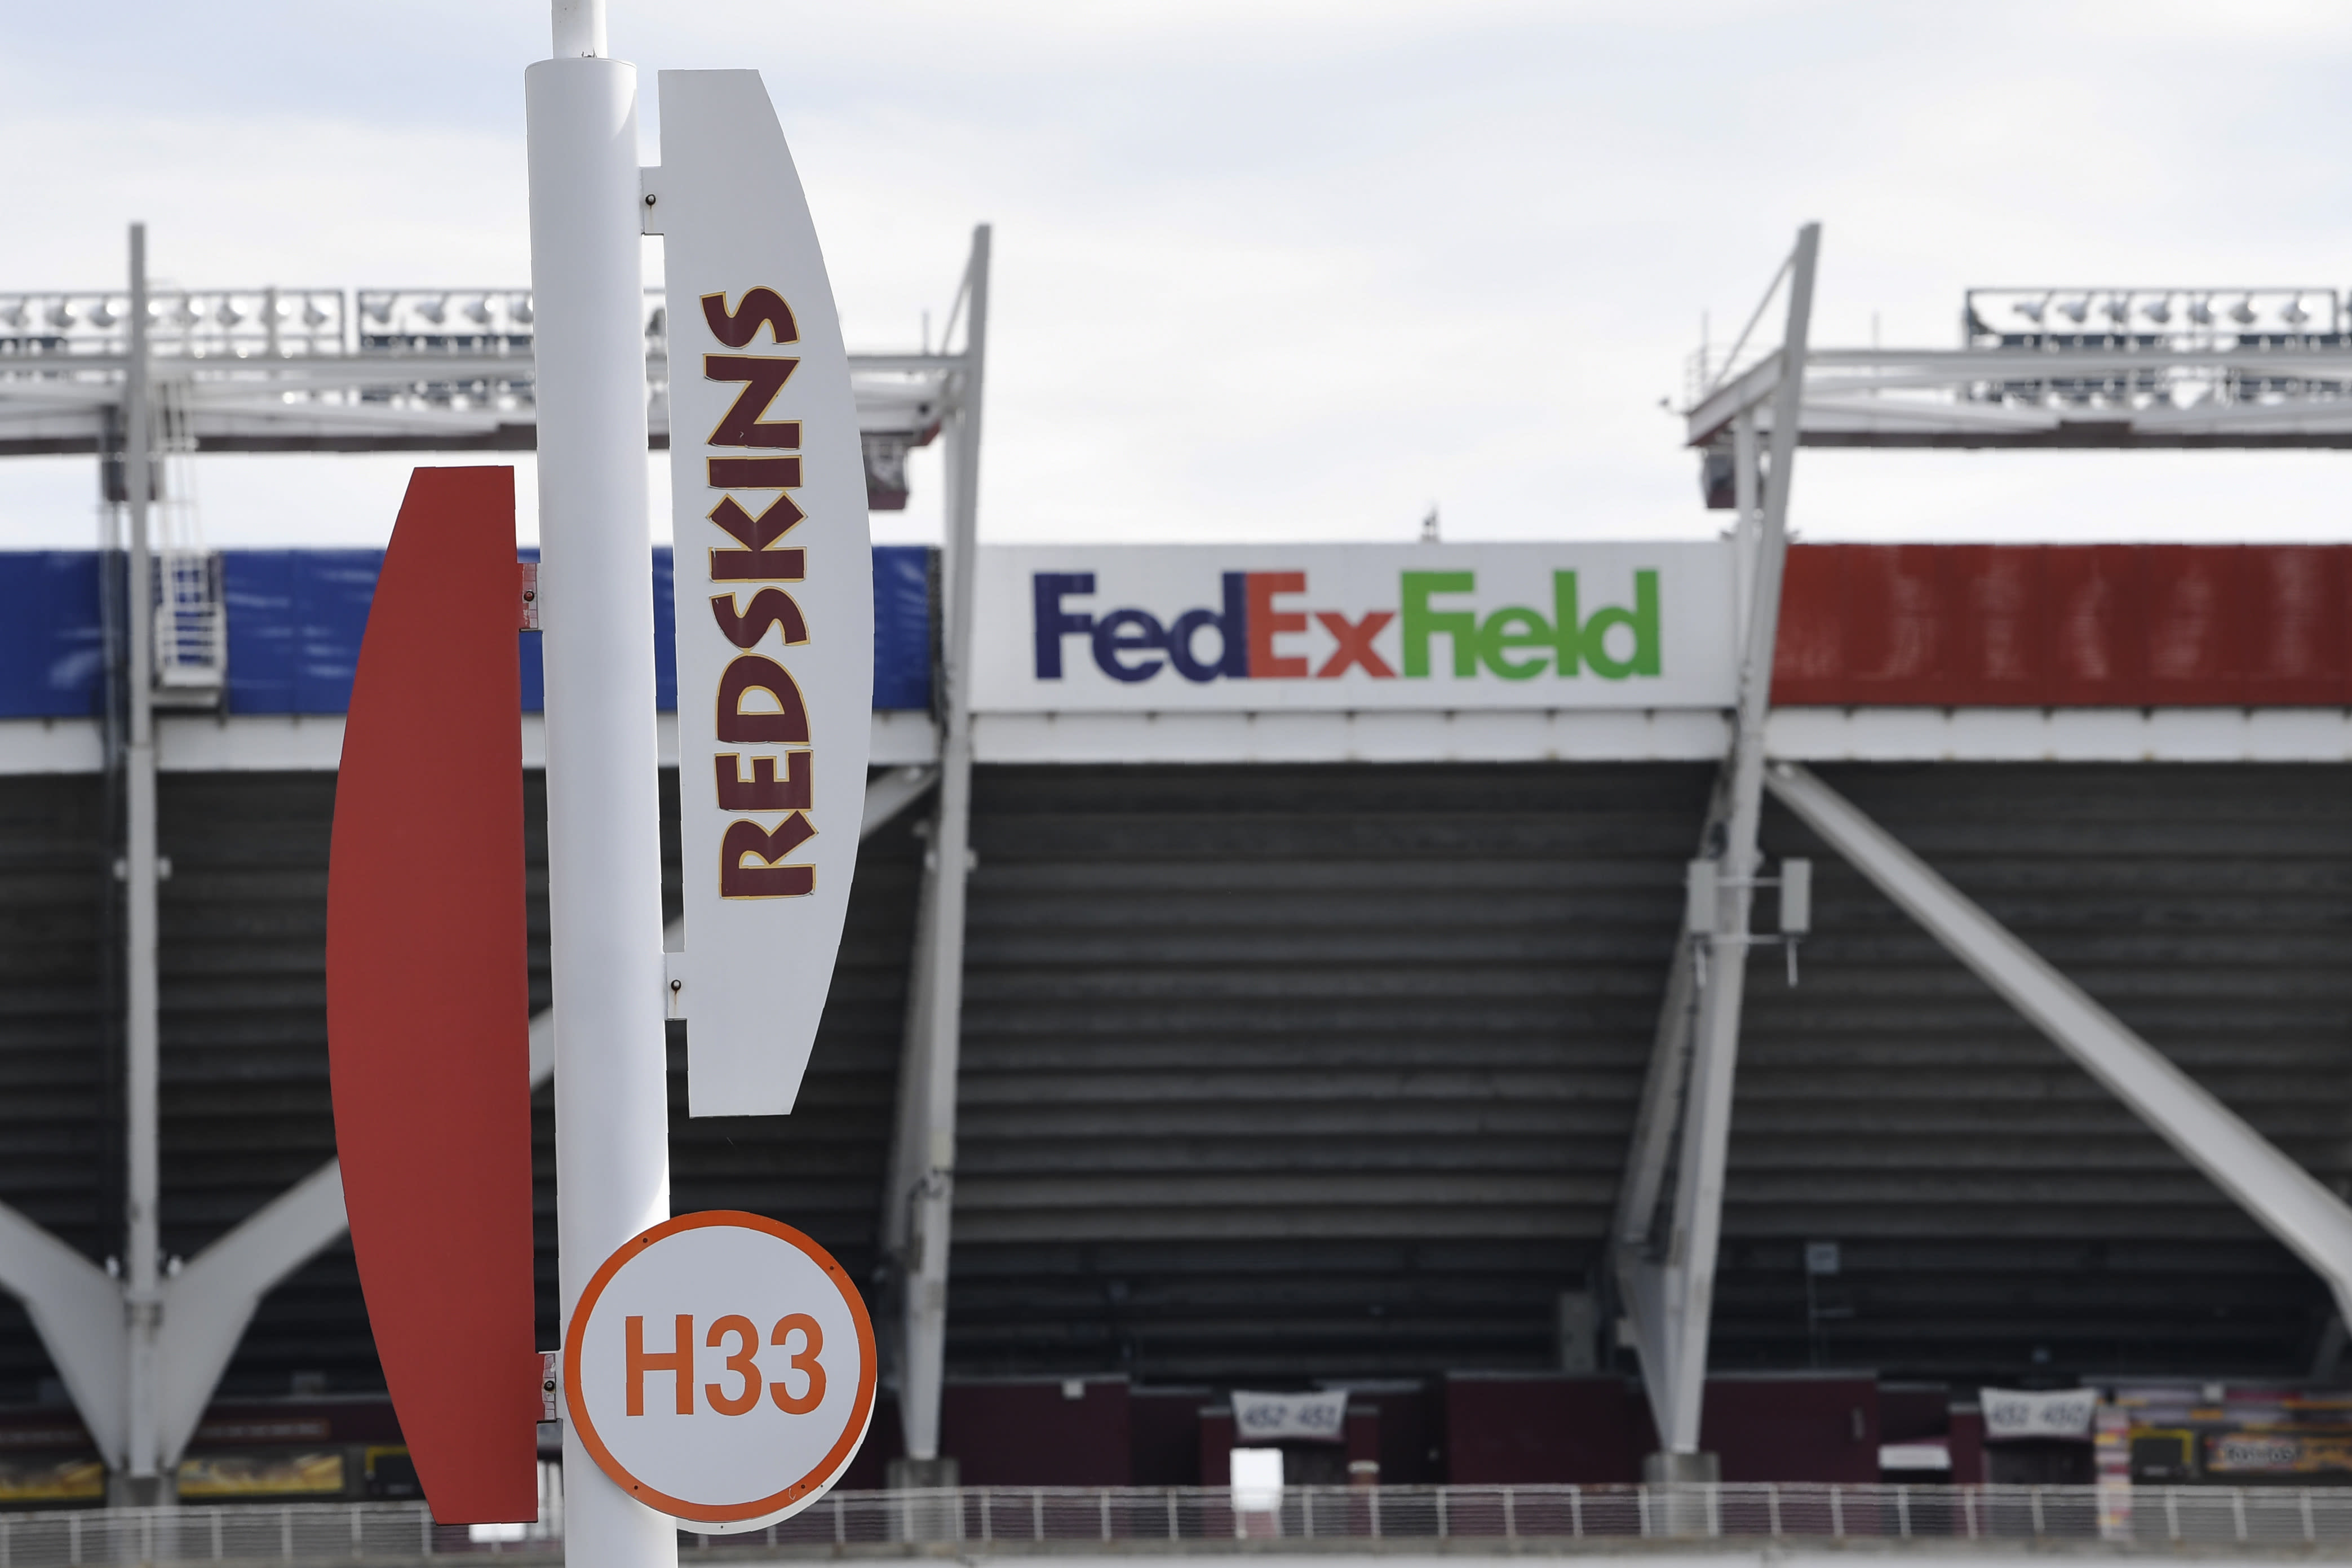 """Signs for the Washington Redskins are displayed outside FedEx Field in Landover, Md., Monday, July 13, 2020. The Washington NFL franchise announced Monday that it will drop the """"Redskins"""" name and Indian head logo immediately, bowing to decades of criticism that they are offensive to Native Americans. (AP Photo/Susan Walsh)"""